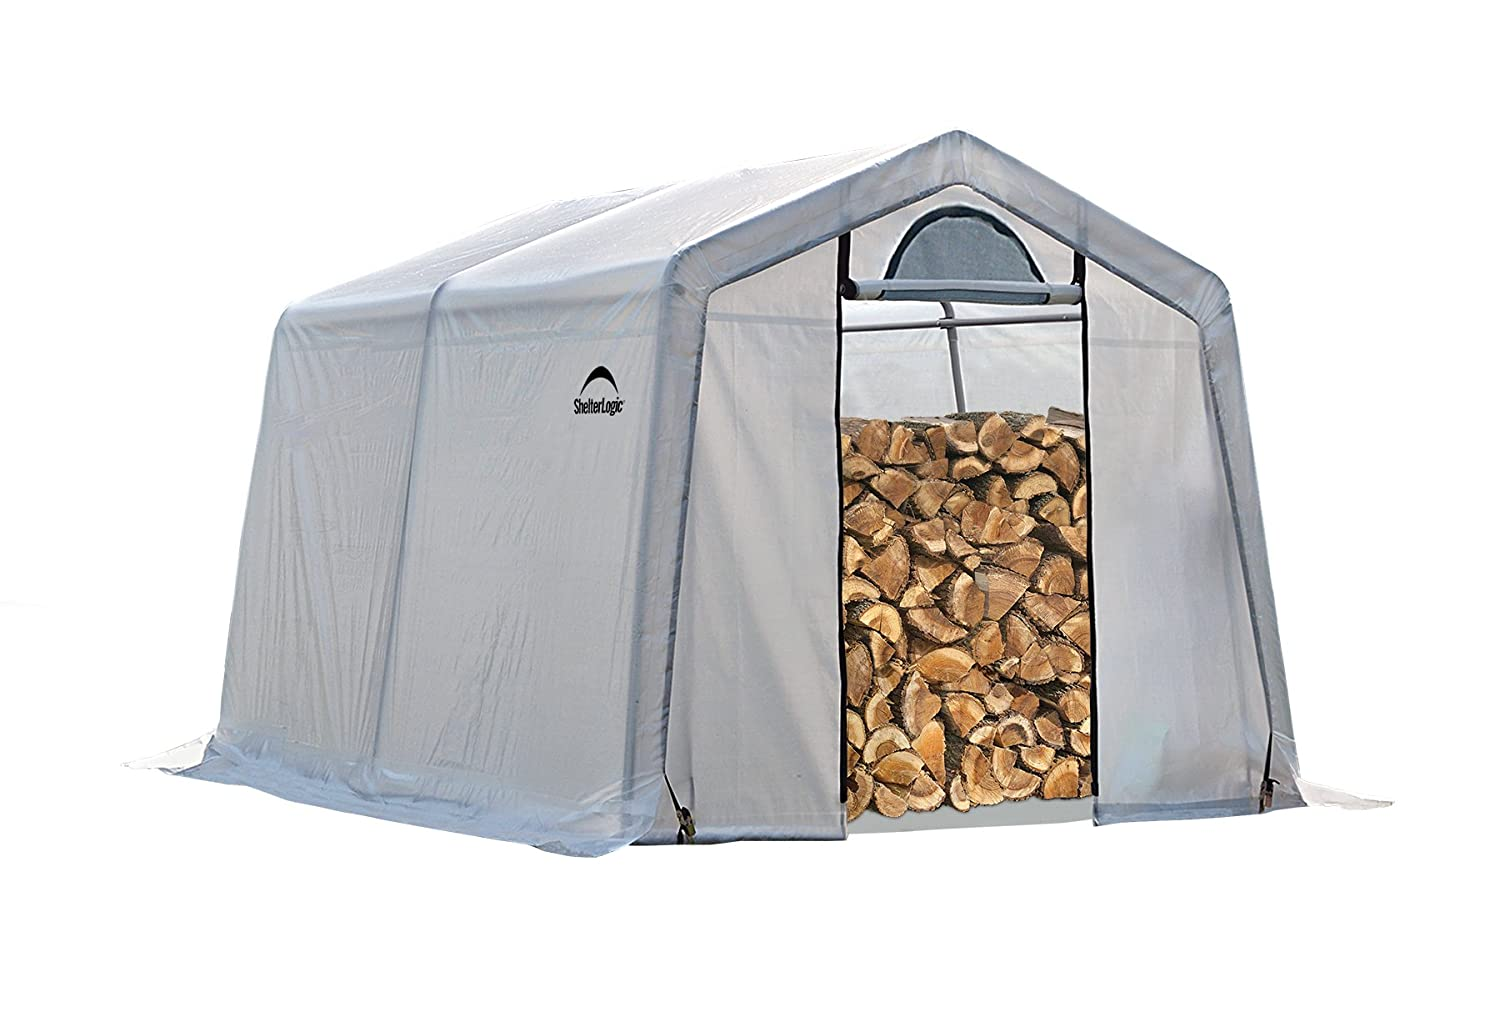 ShelterLogic Firewood Seasoning Shed, 5 x 3.5 x 5 ft. Shelter Logic - LG 90395